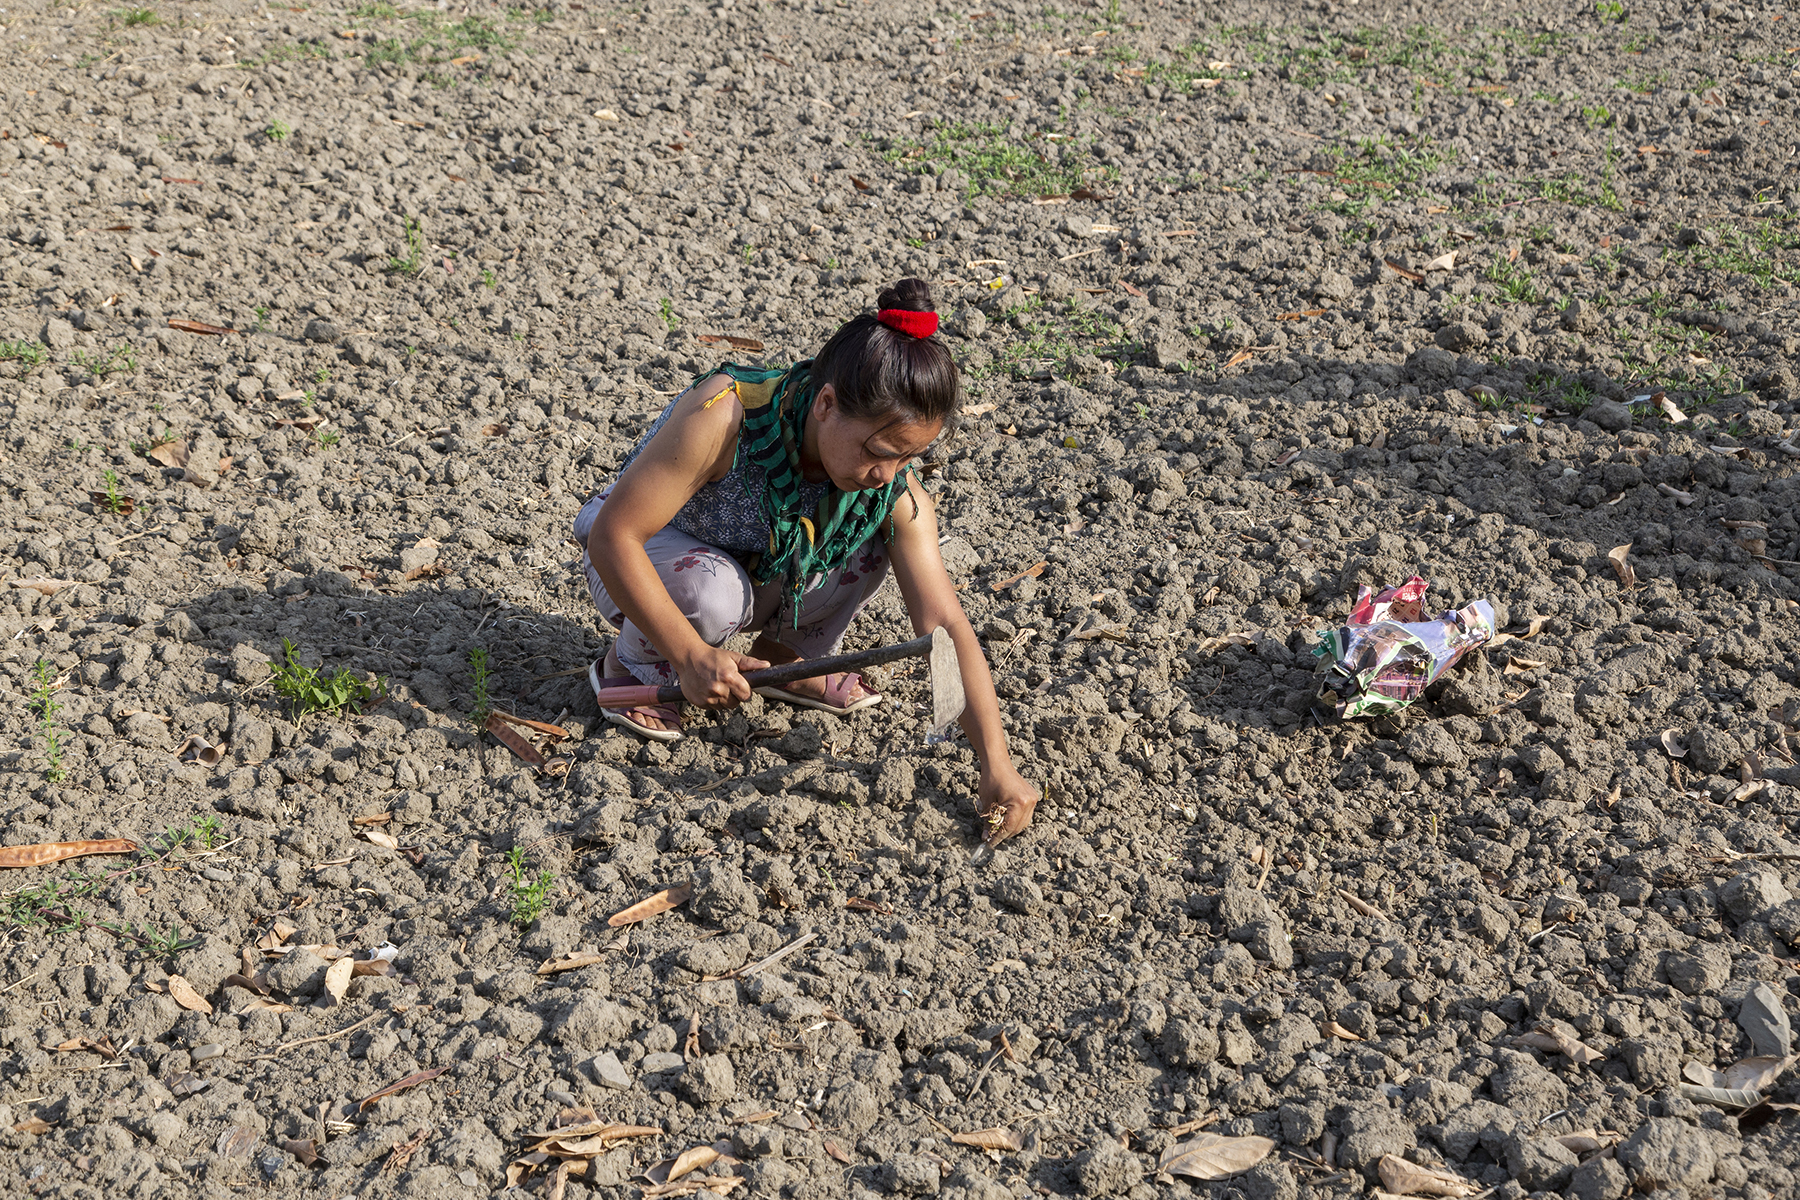 Ngaihnem squatting in a ploughed field made up of clods of dark grey soil. She holds a hoe in her right hand and her left hand reaches down to plant a seedling.